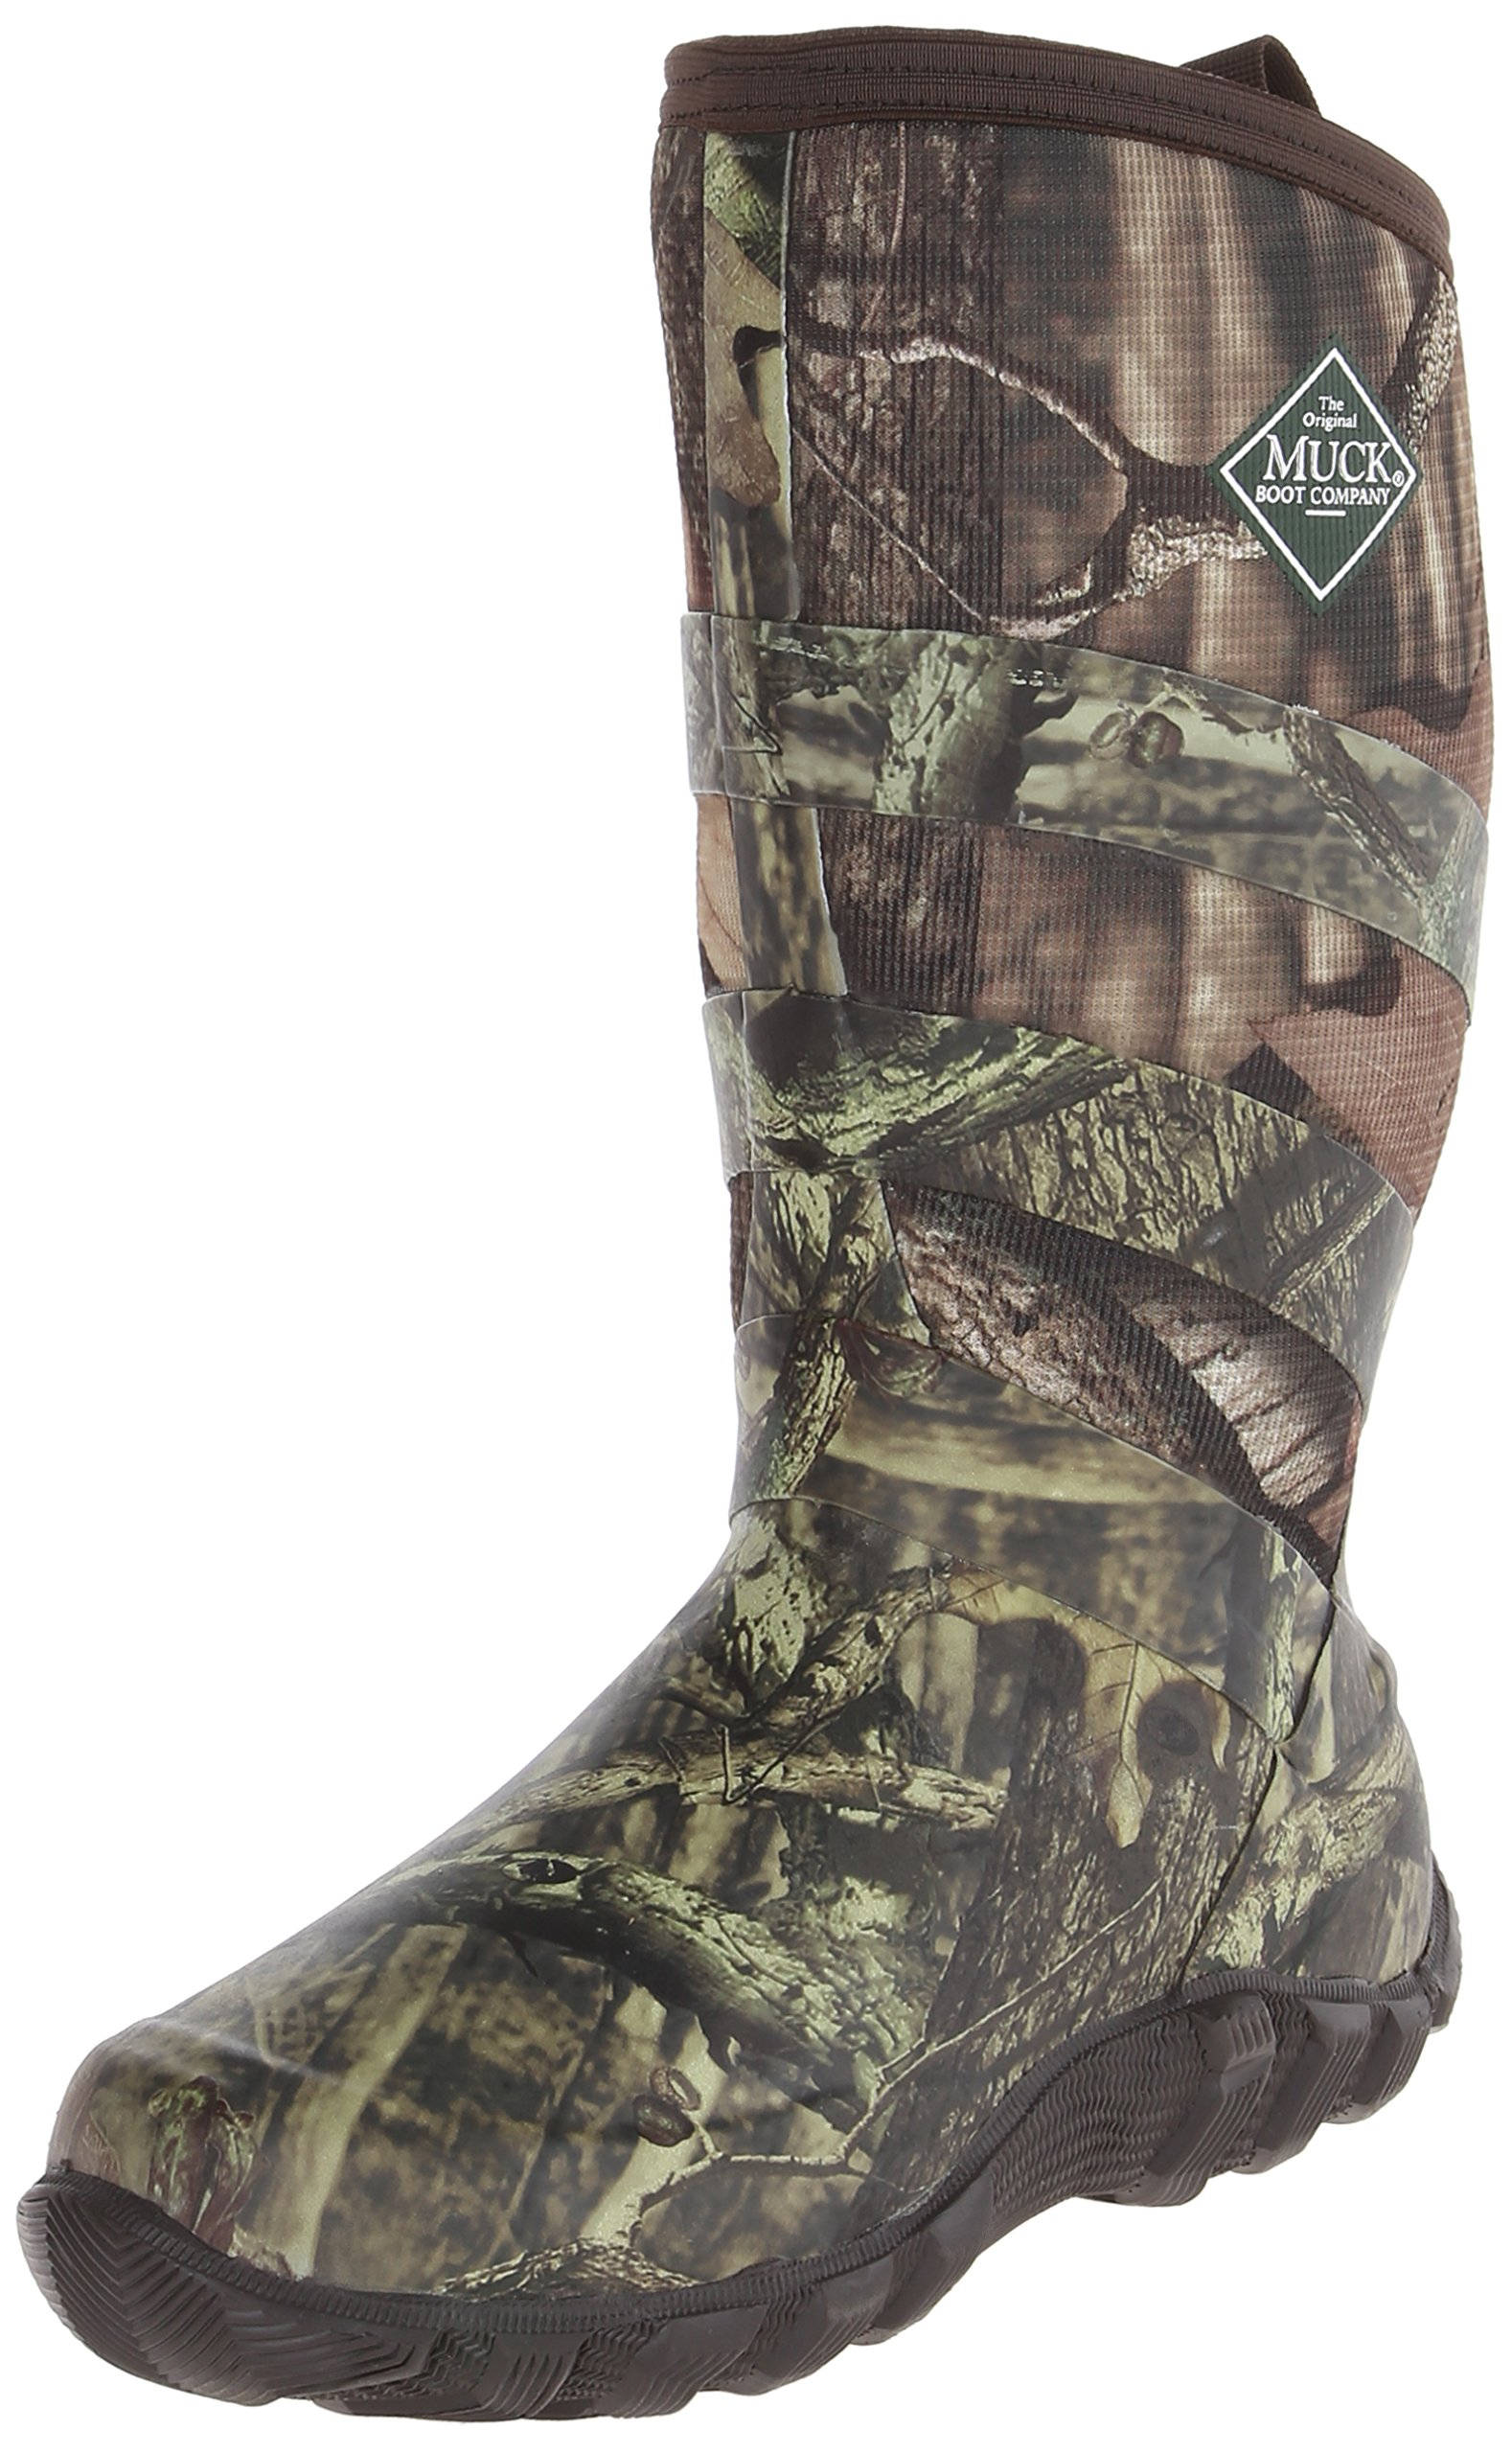 Muck Pursuit Fieldrunner 15'' Rubber Insulated Men's Hunting Boots